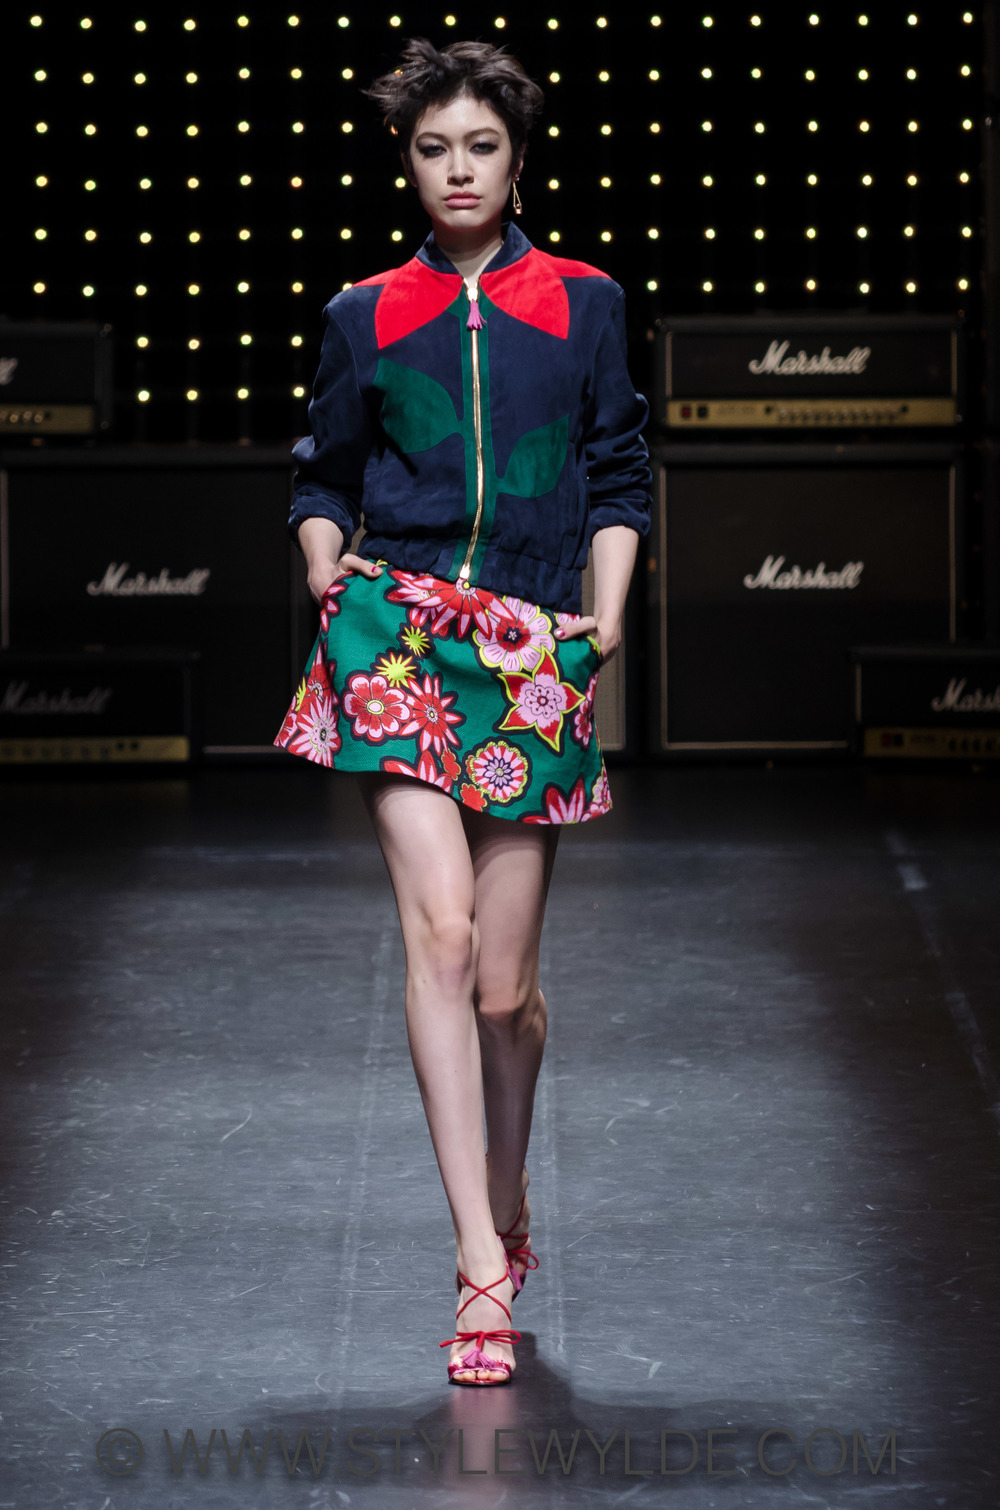 stylewylde_HouseofHolland_SS15 (1 of 68).jpg